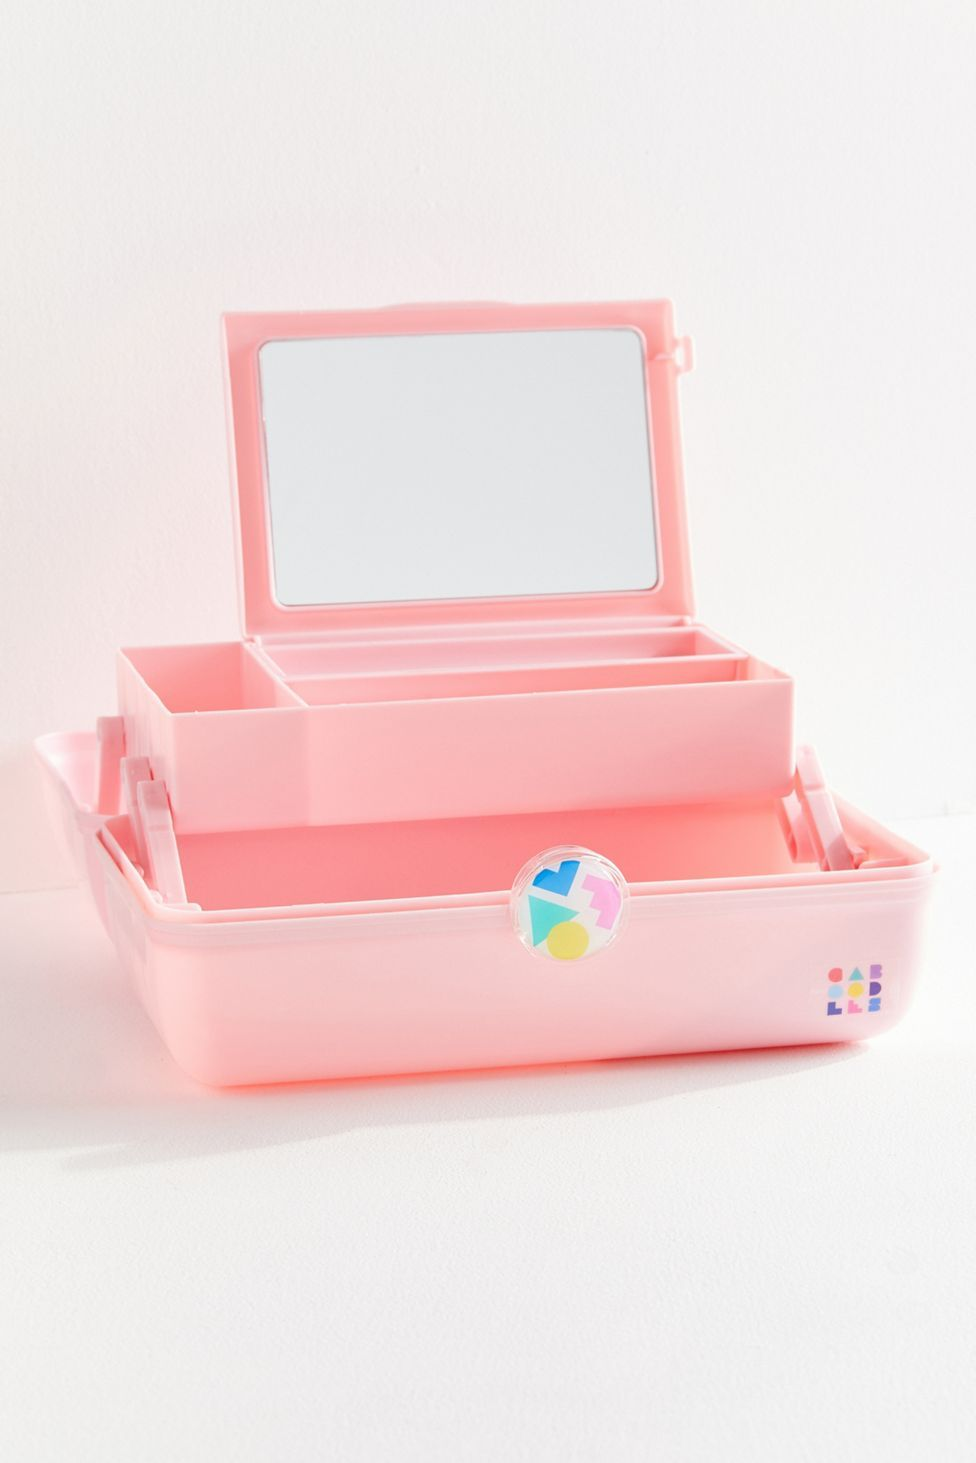 Caboodles On The Go Girl Makeup Case Urban Outfitters Canada In 2020 Caboodles Makeup Cases Makeup Case Caboodles